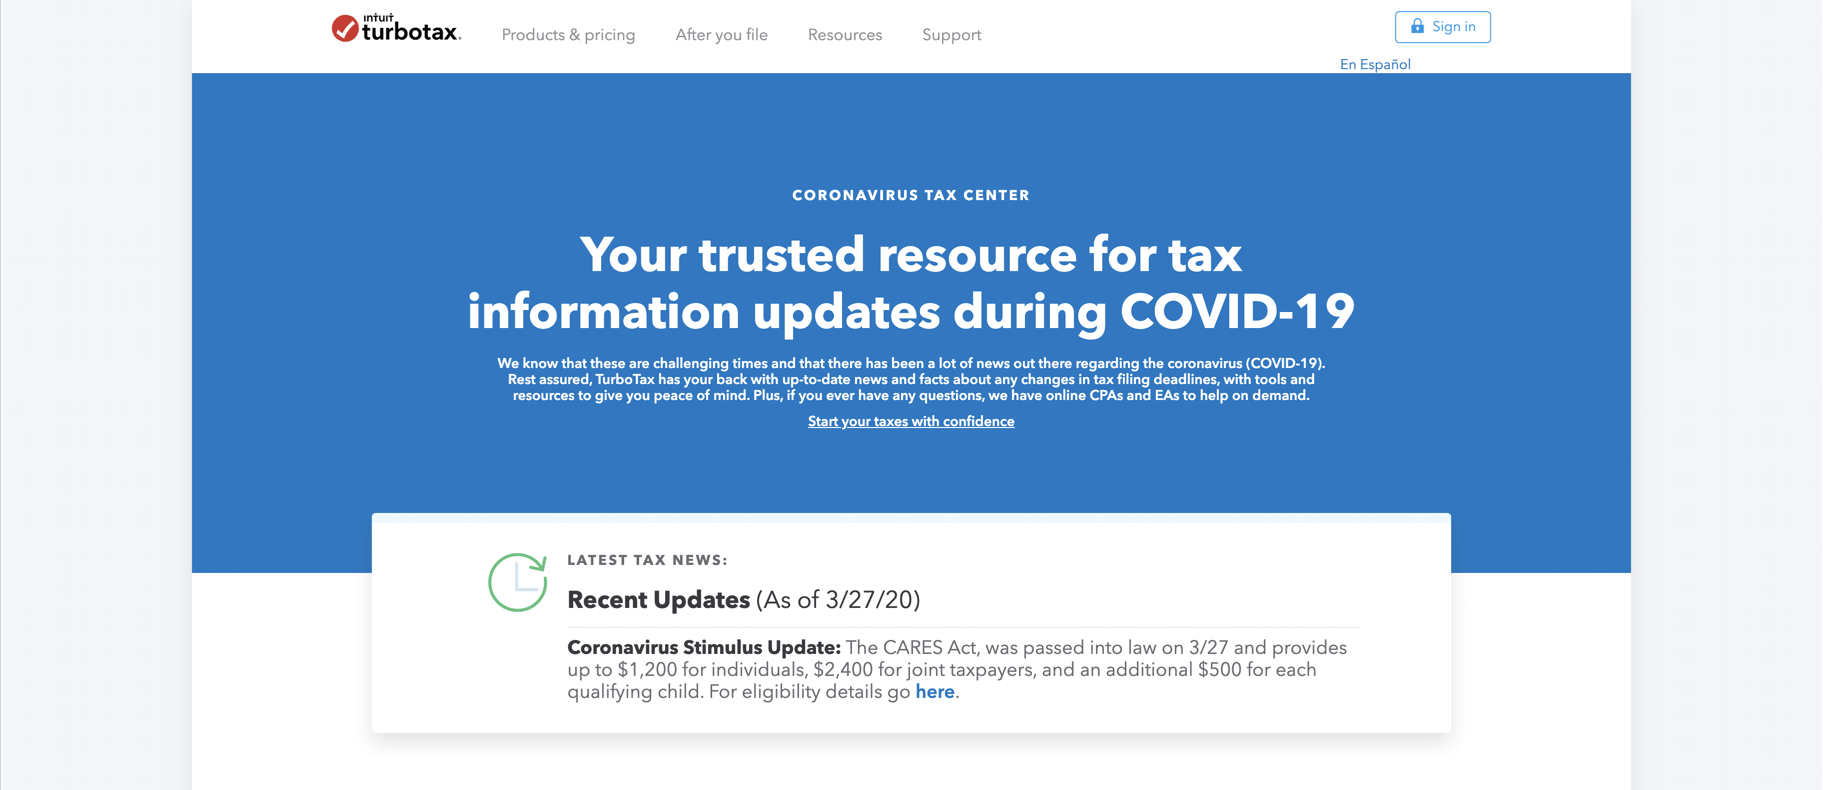 Turbo Tax COVID-19 hub news page